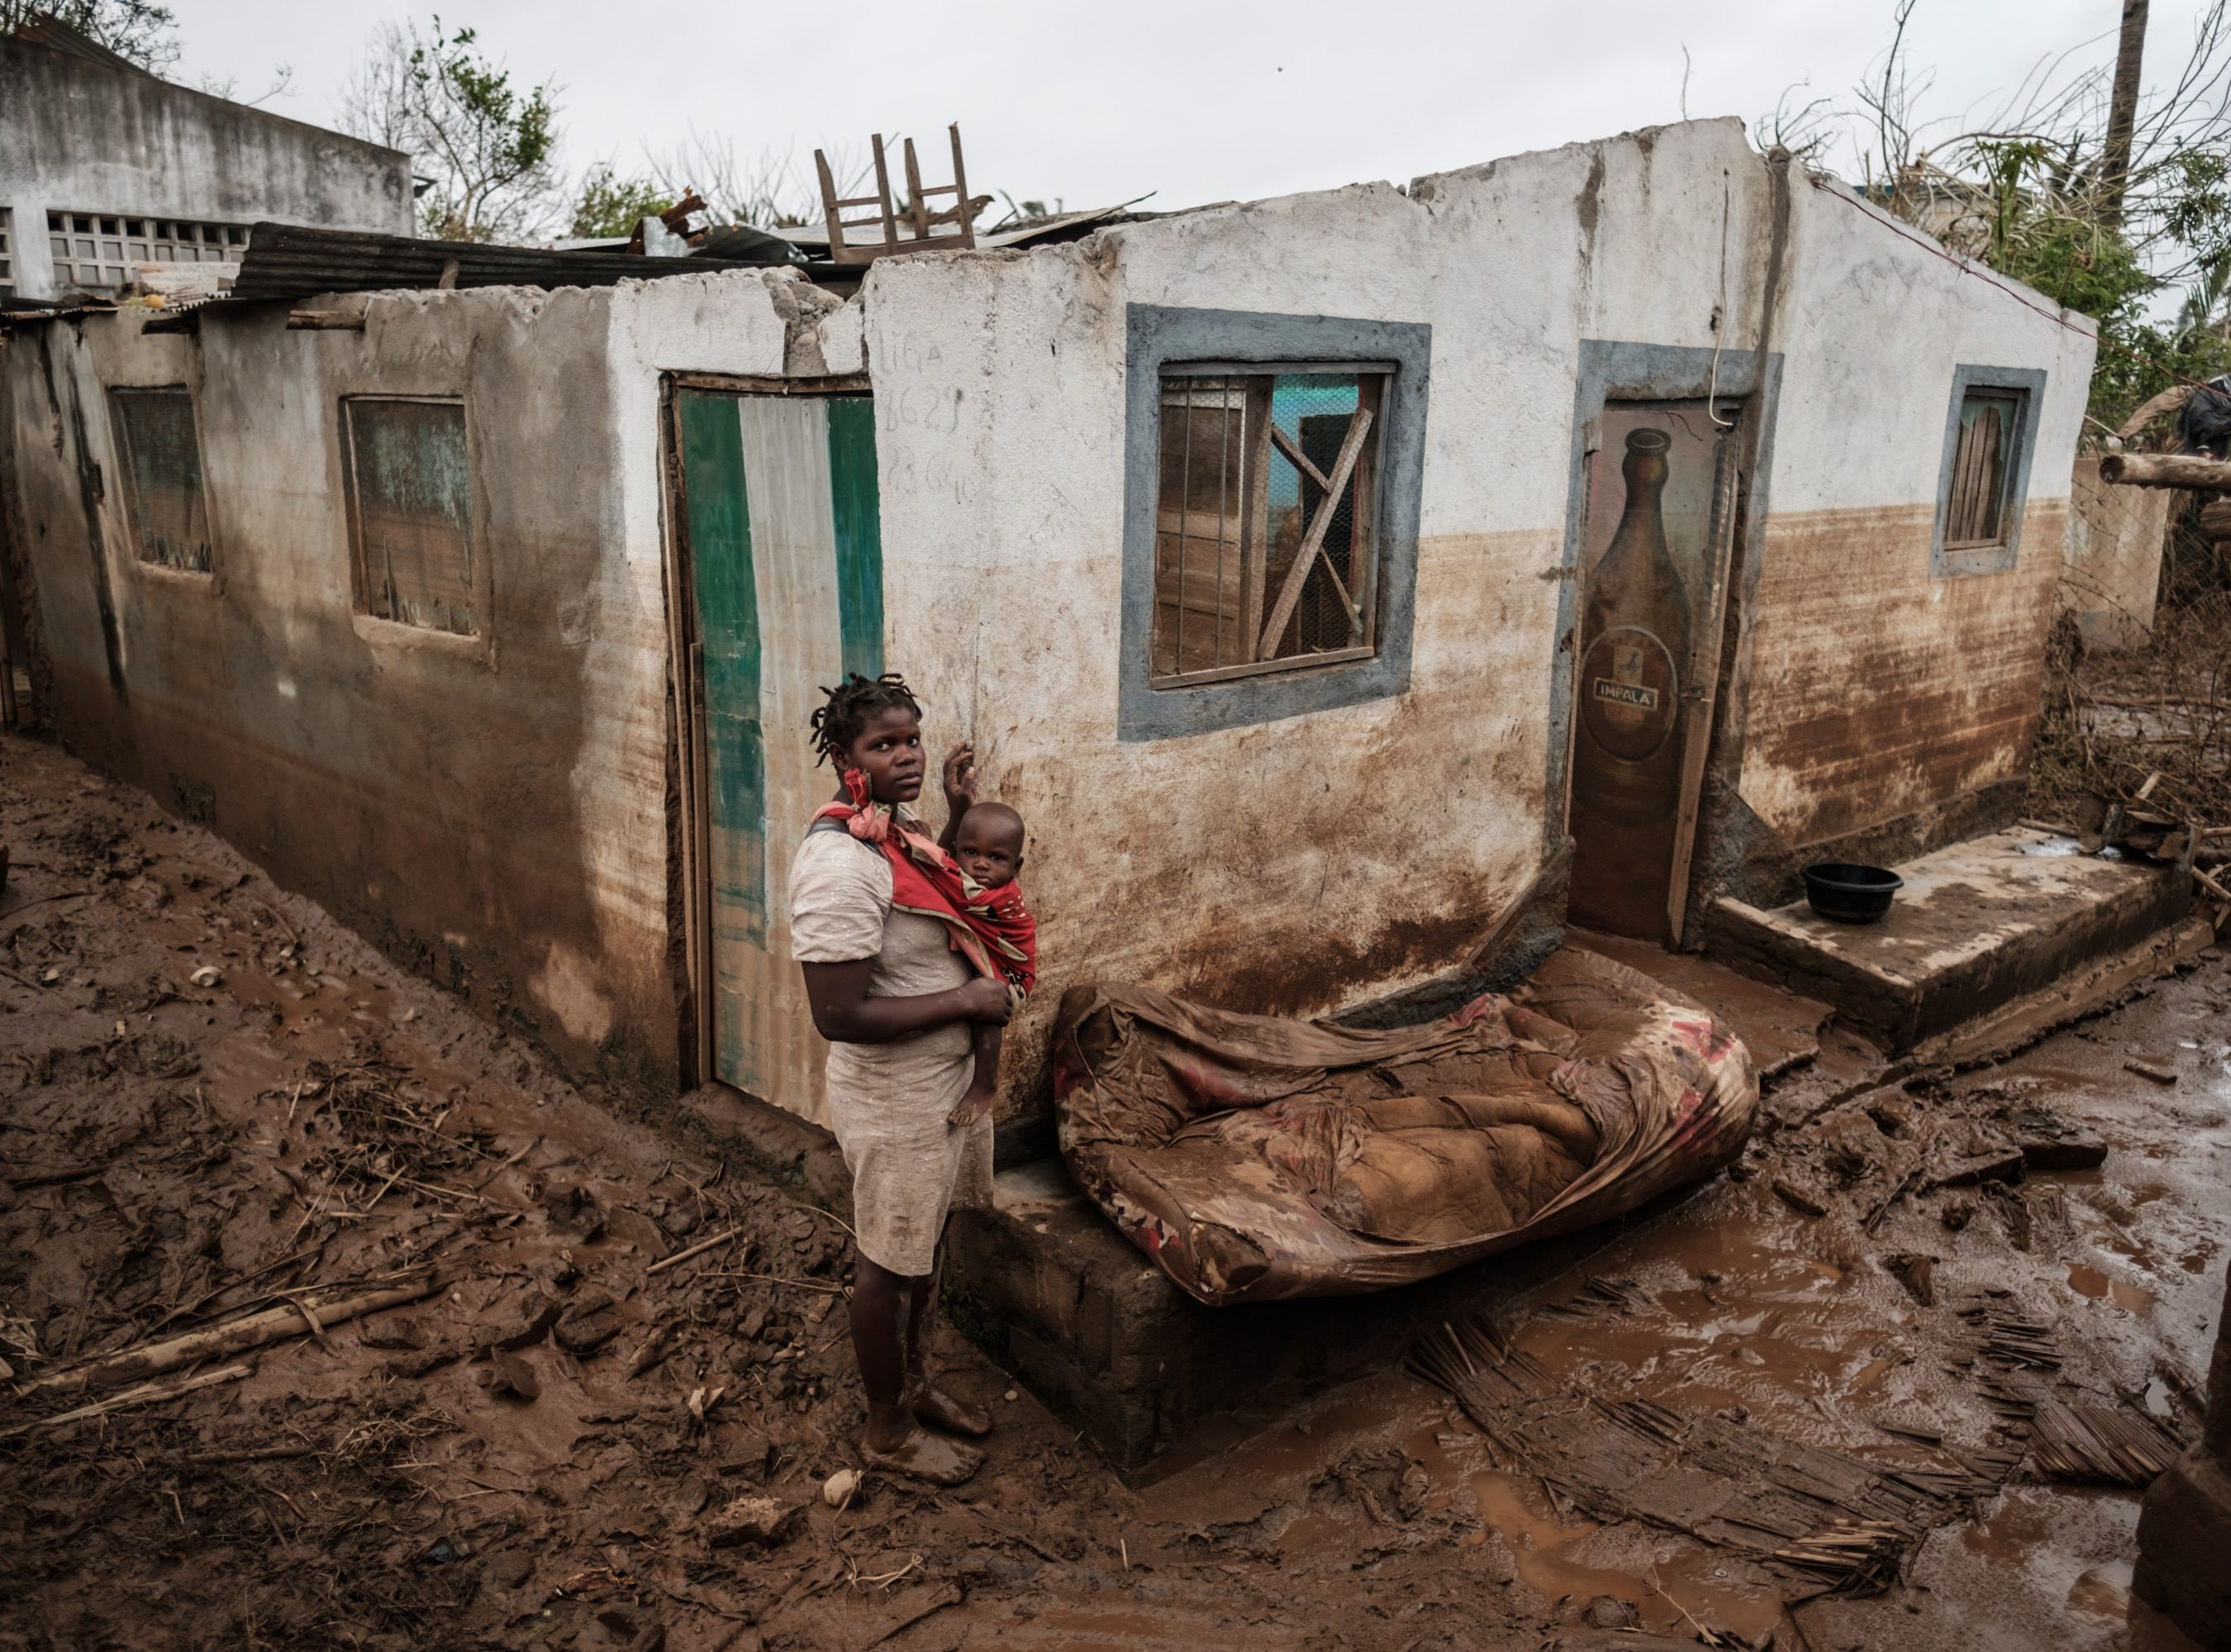 Rosa Tomas, 27, poses with her one-year-old son Dionisio Eduardo, in front of their destroyed and mud-covered home in Buzi, Mozambique, on March 23, 2019, after the area was hit by the Cyclone Idai.